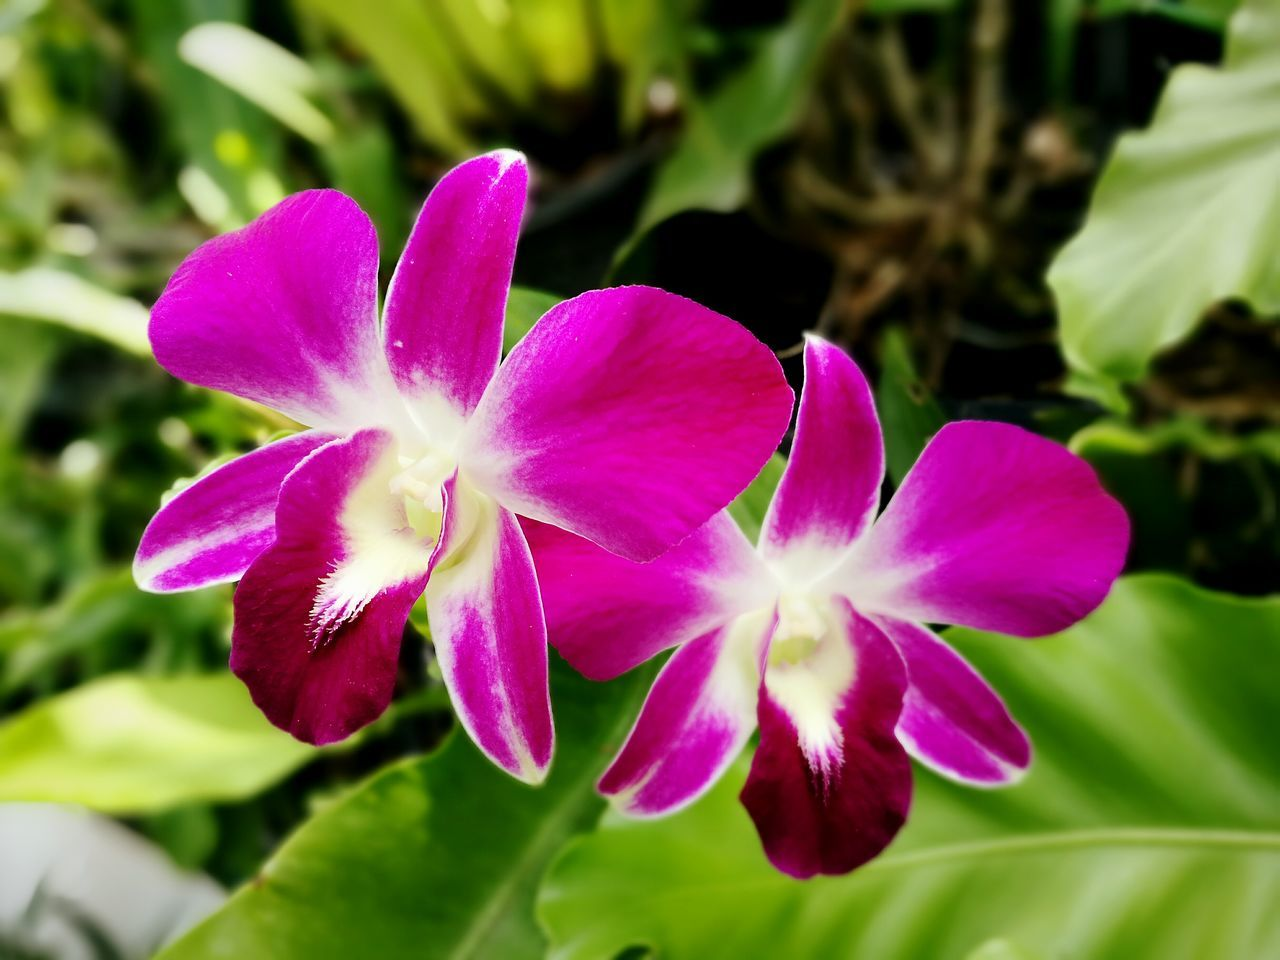 Orchid, Orchid flower Purple Color Orchids Orchid Blossoms Orchid Flower Orchidslover Orchids Collection Orchid Blossoms Orchid Flower Orchids